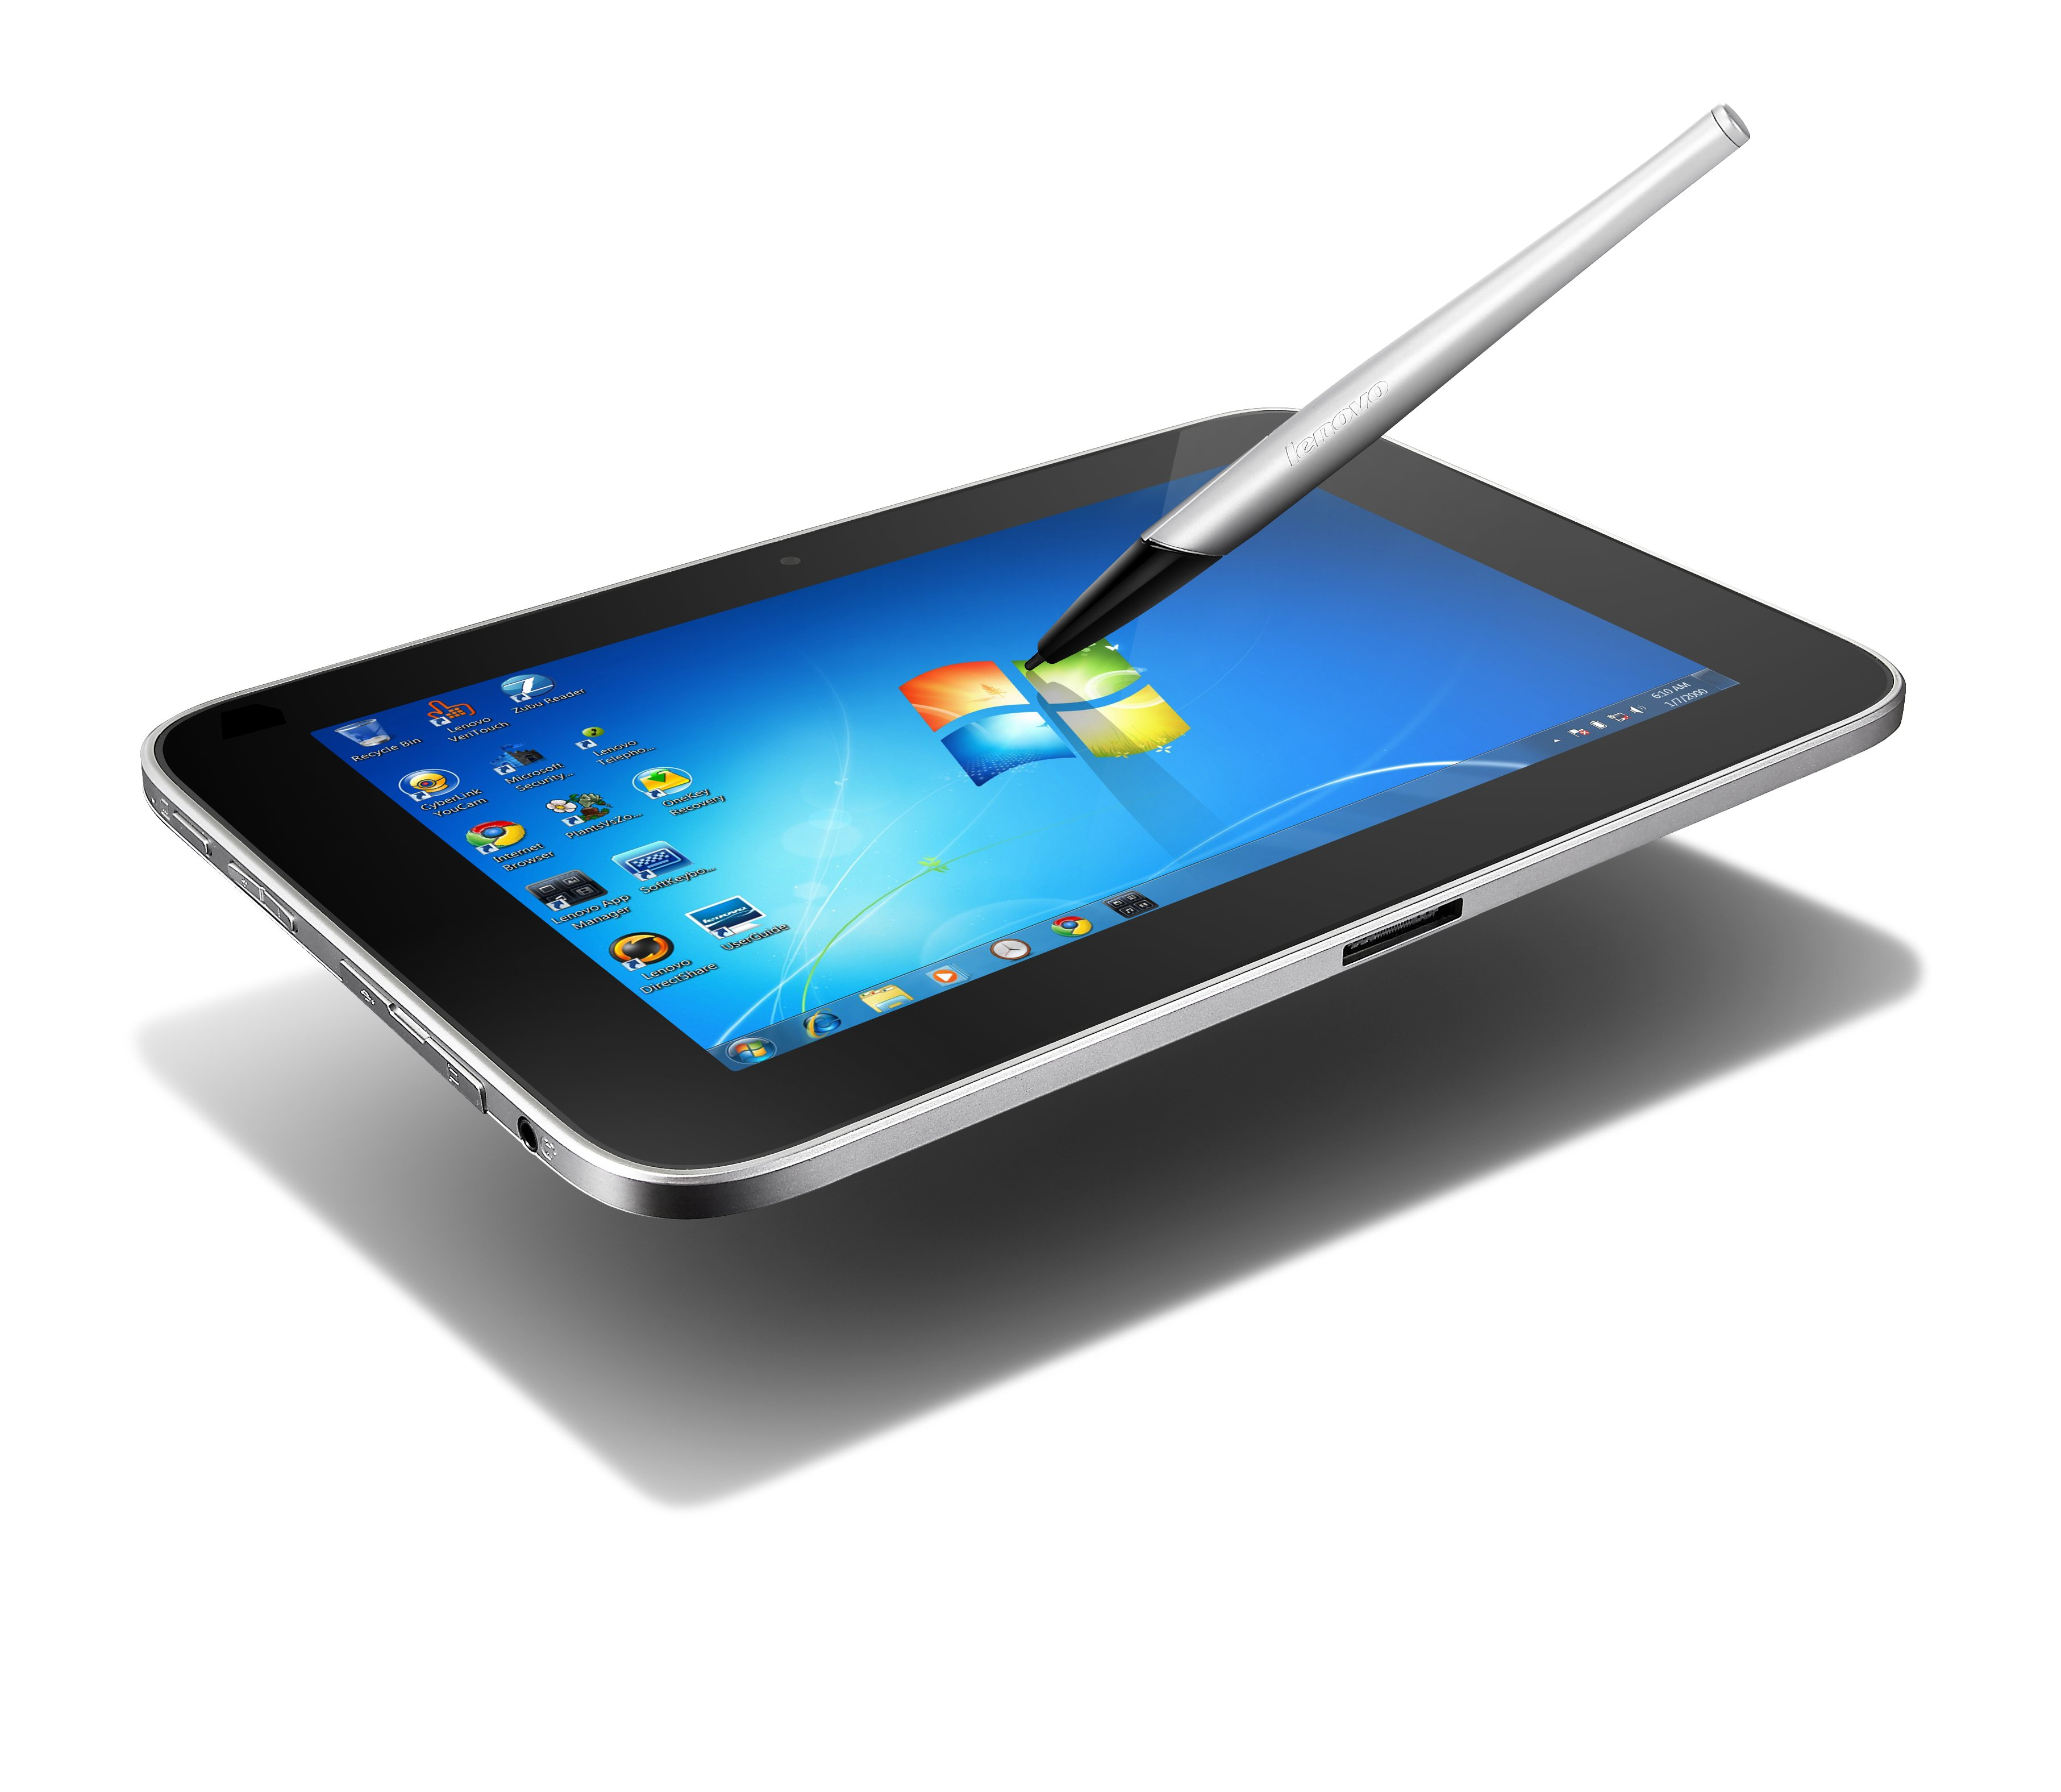 Lenovo Tablet Android Software Update Ideatab A1000 Firmware Idea Tab A3500 Blue Download